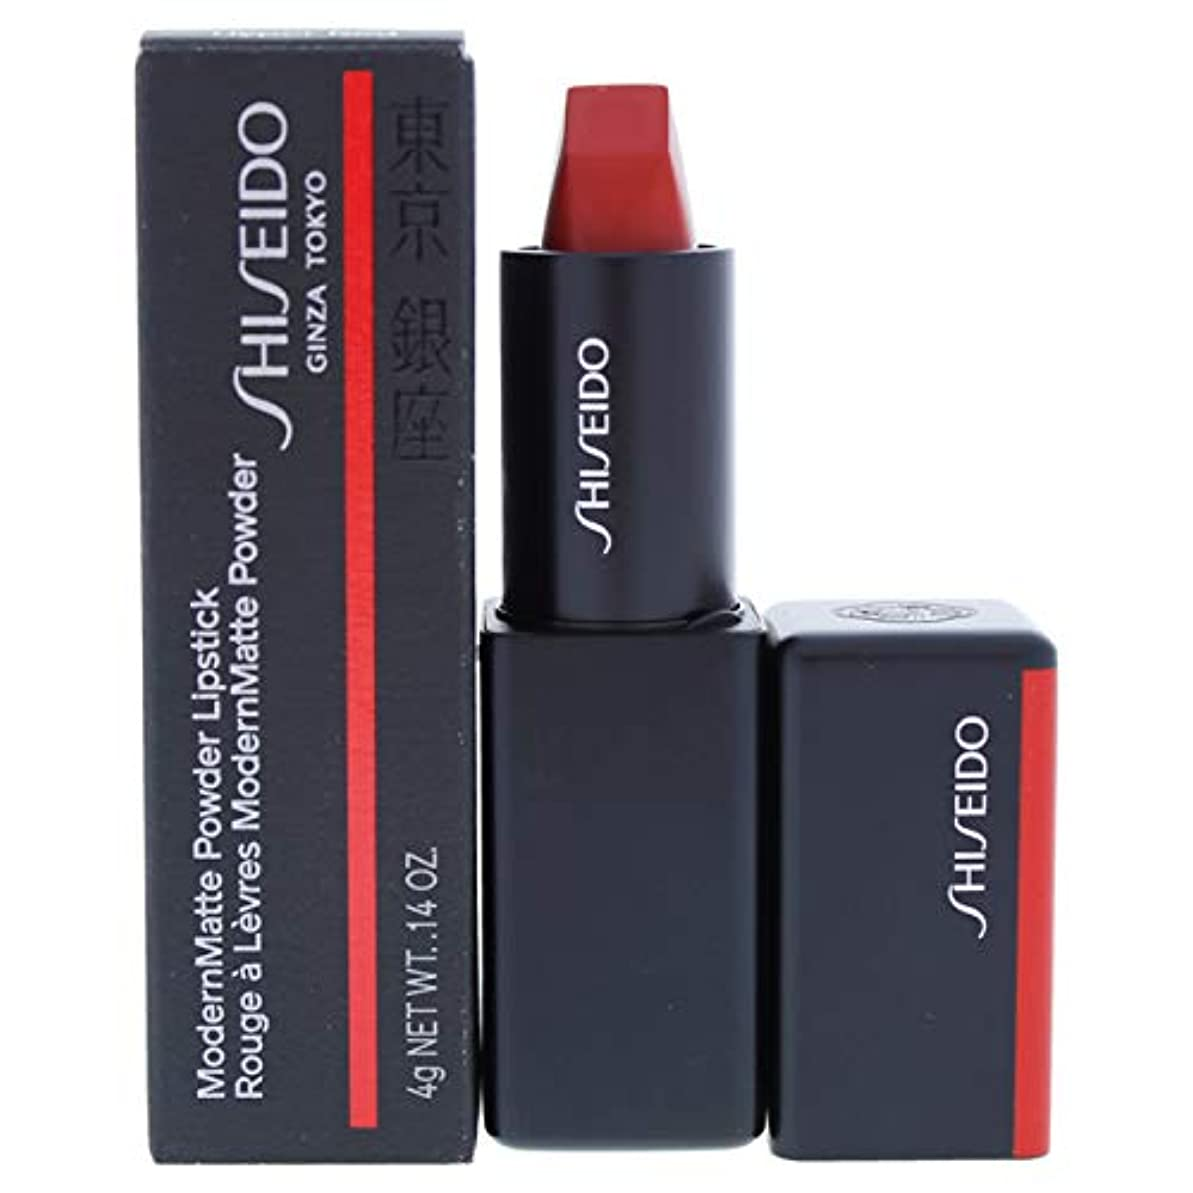 資生堂 ModernMatte Powder Lipstick - # 514 Hyper Red (True Red) 4g/0.14oz並行輸入品